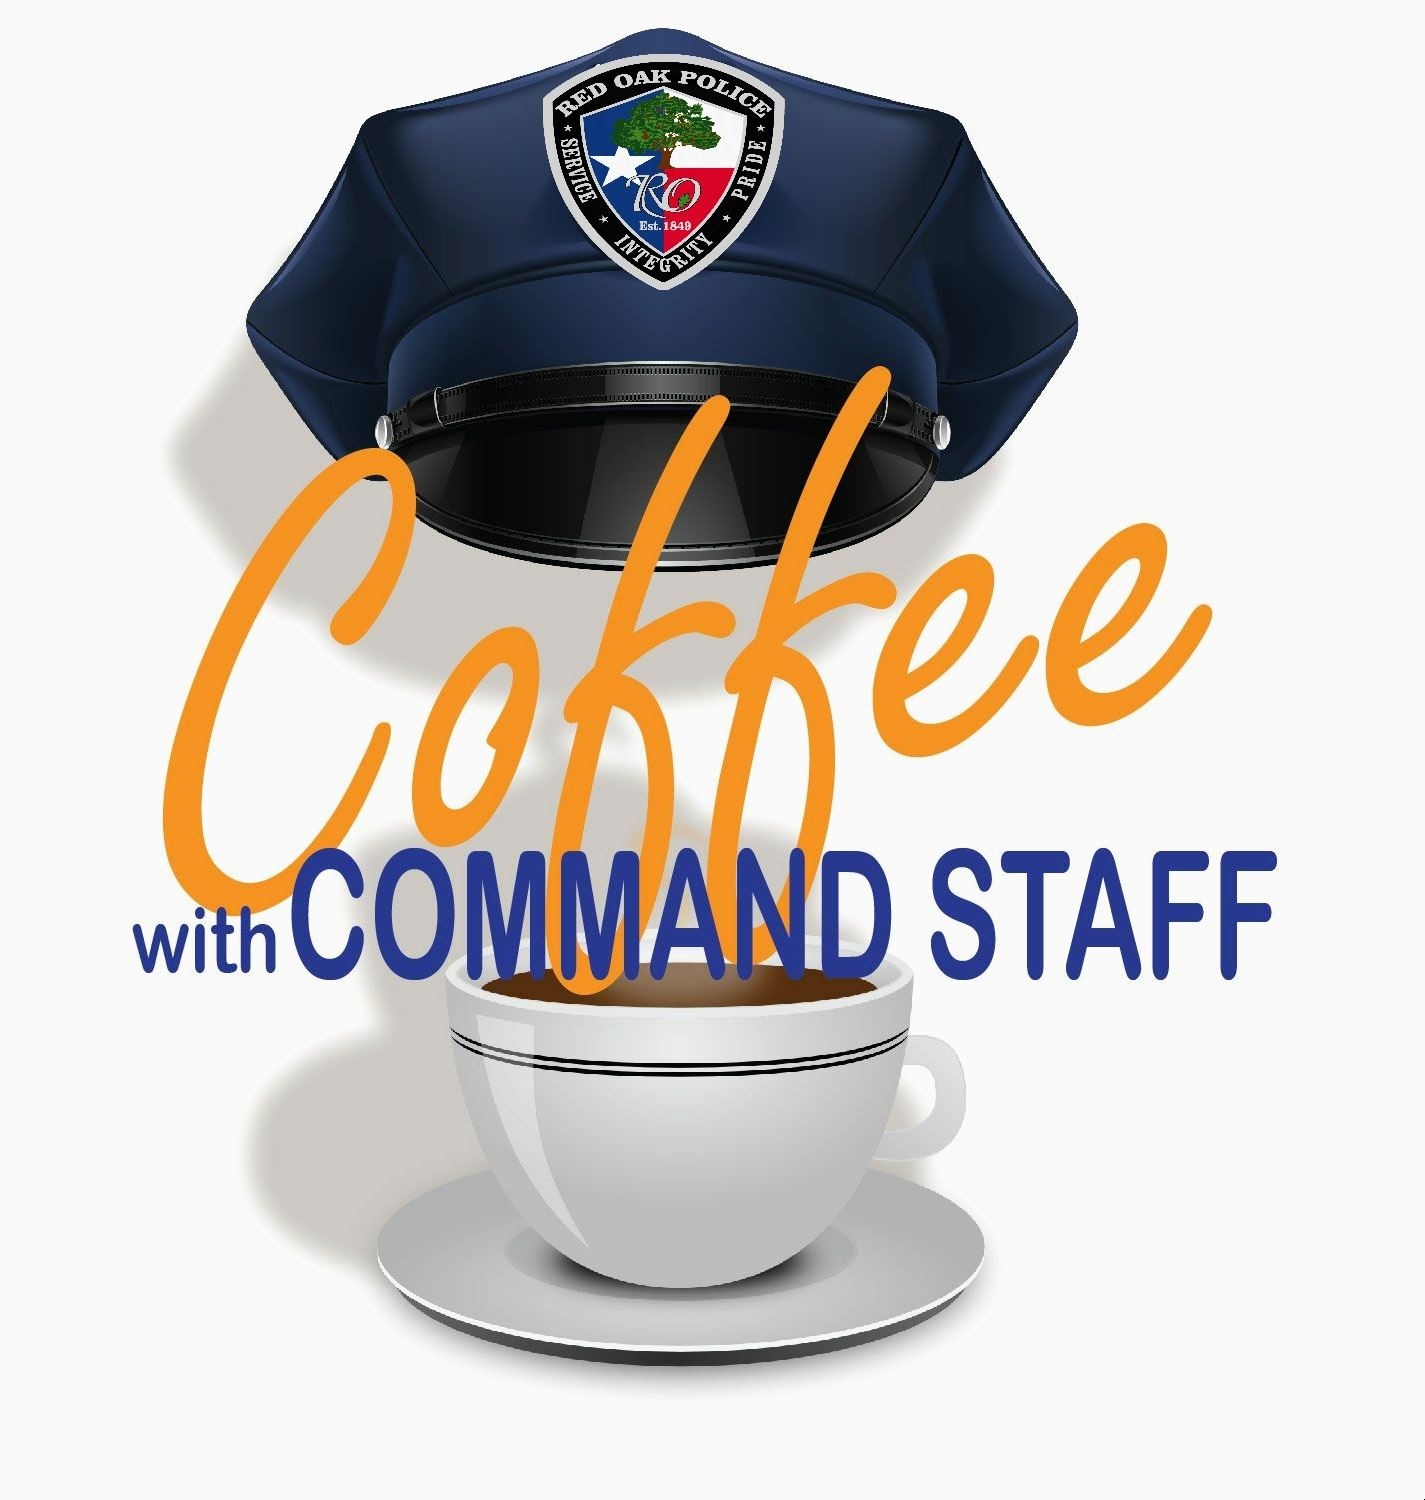 Coffee with the command staff